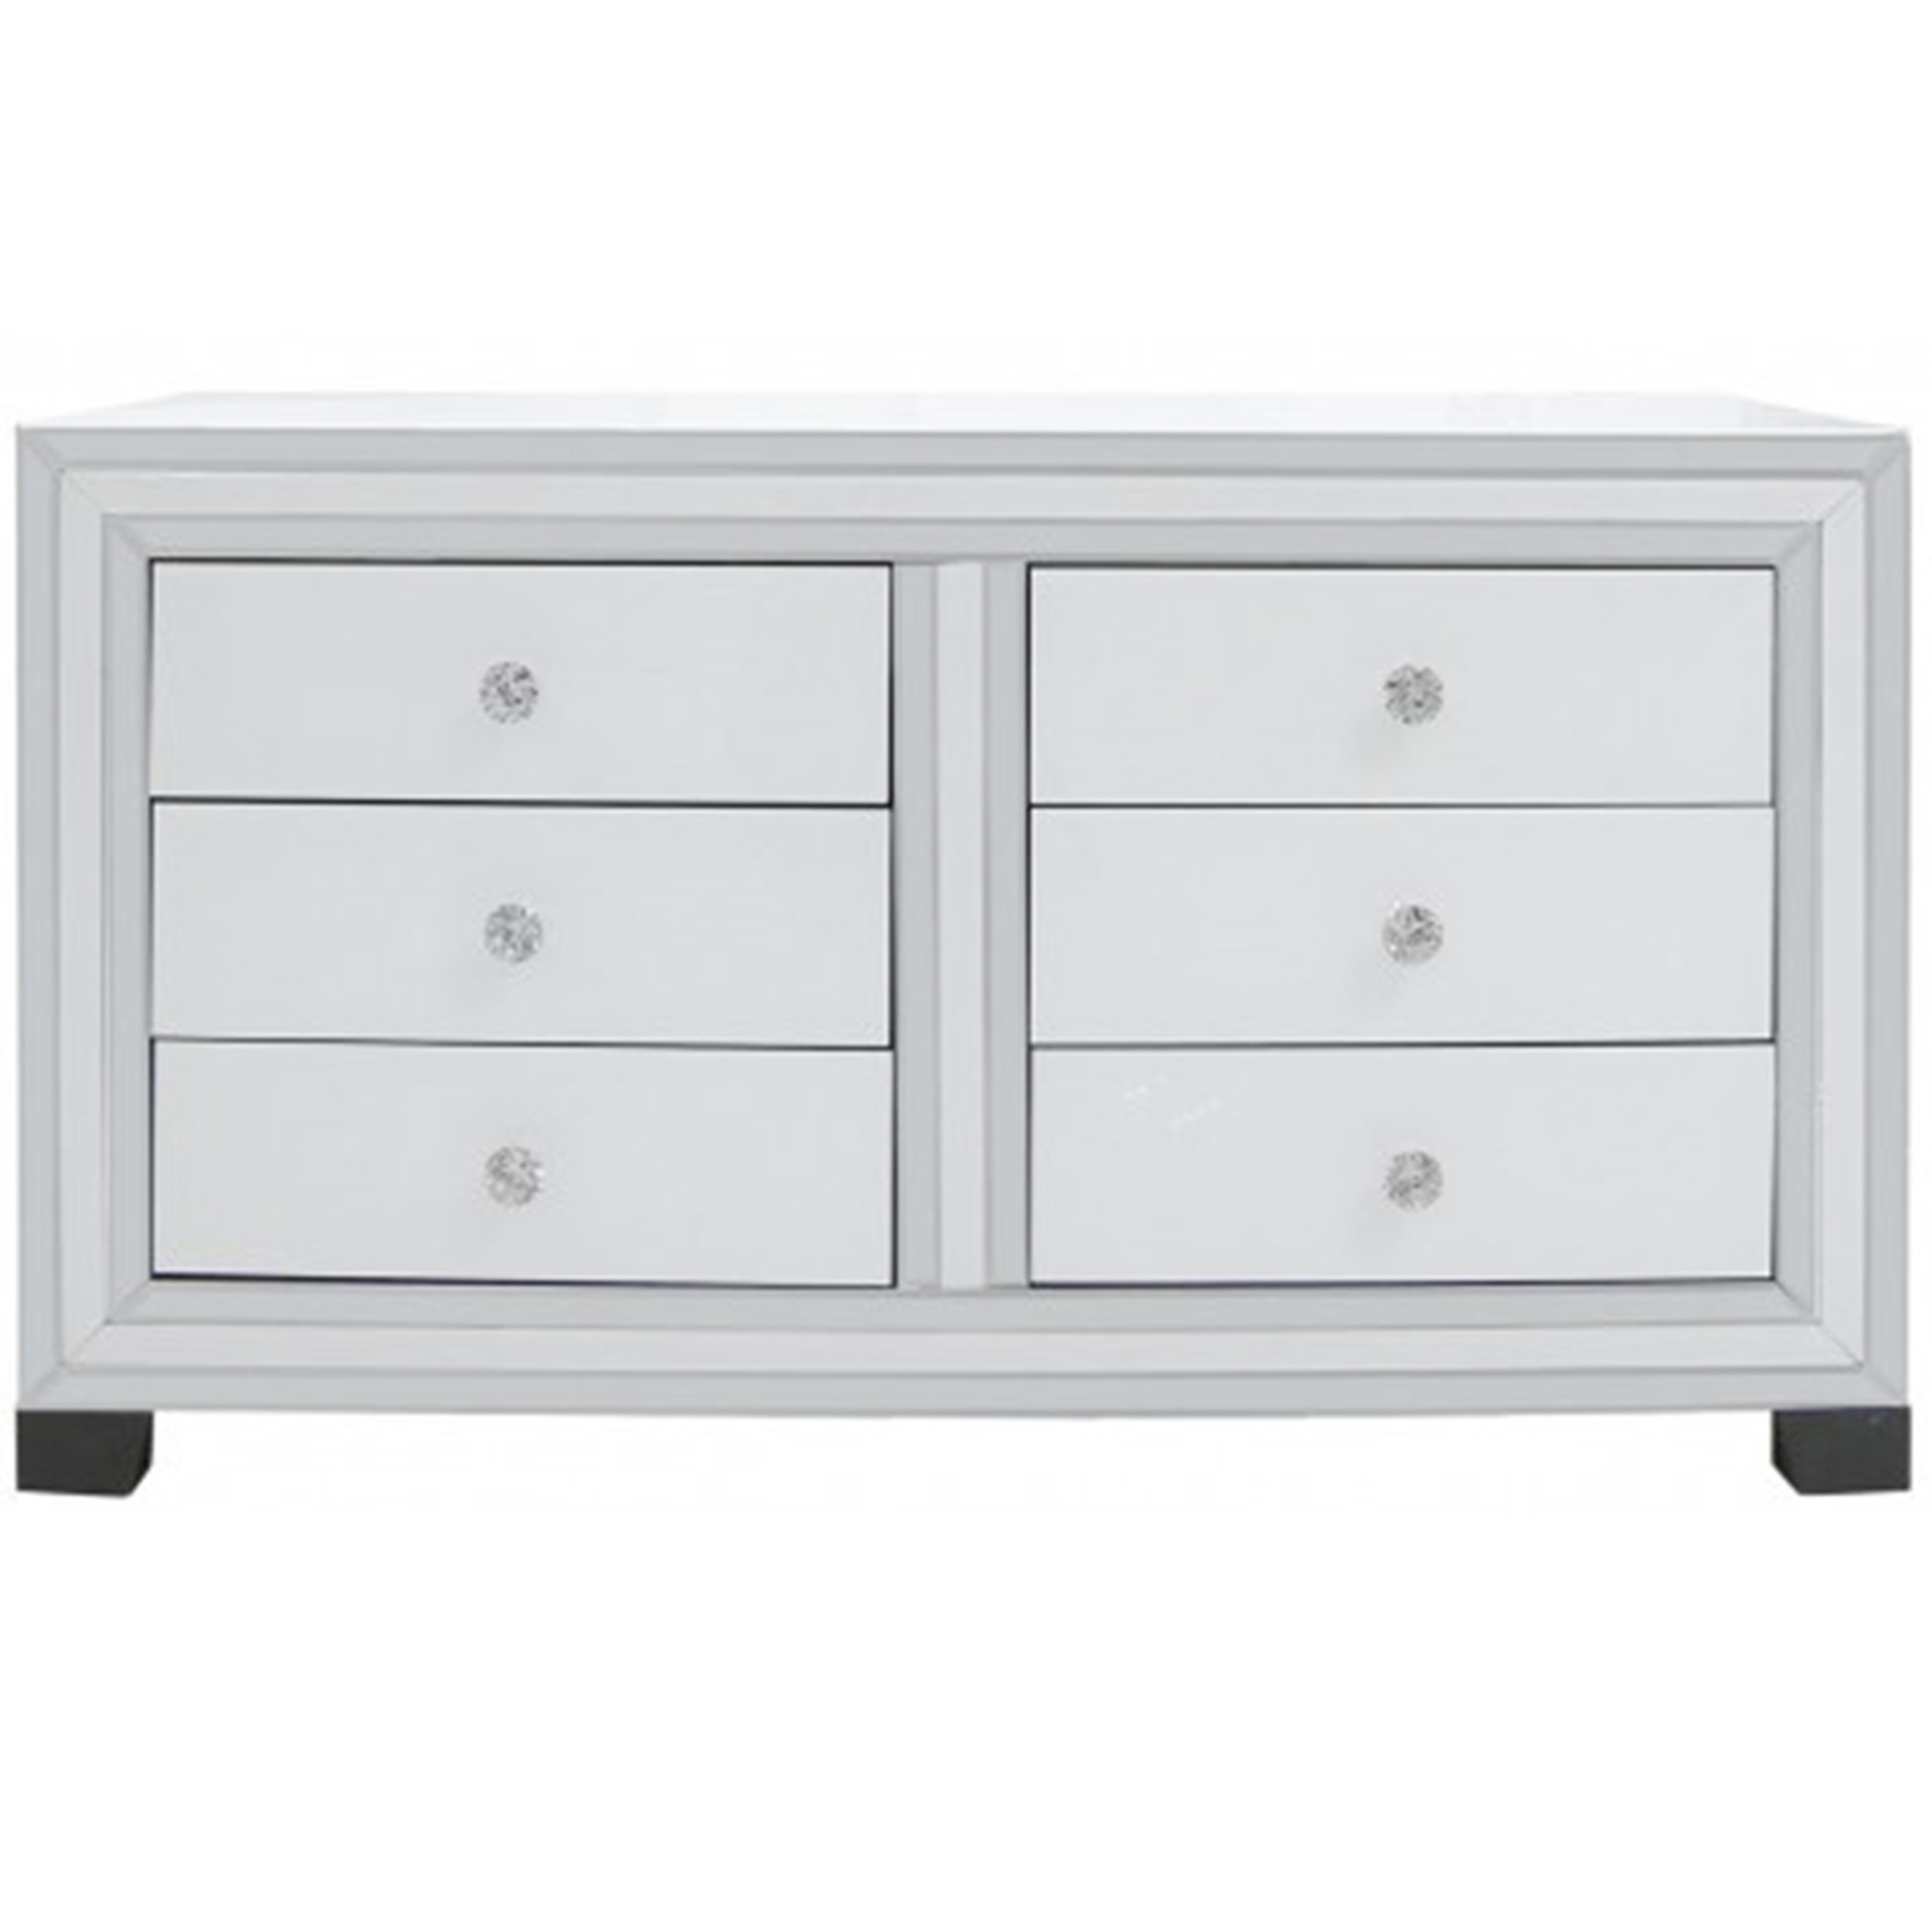 mirrored design wooden with home table round pattern floor furniture drawers dresser chest featuring silver d white flower lamp interior cheap polished vase